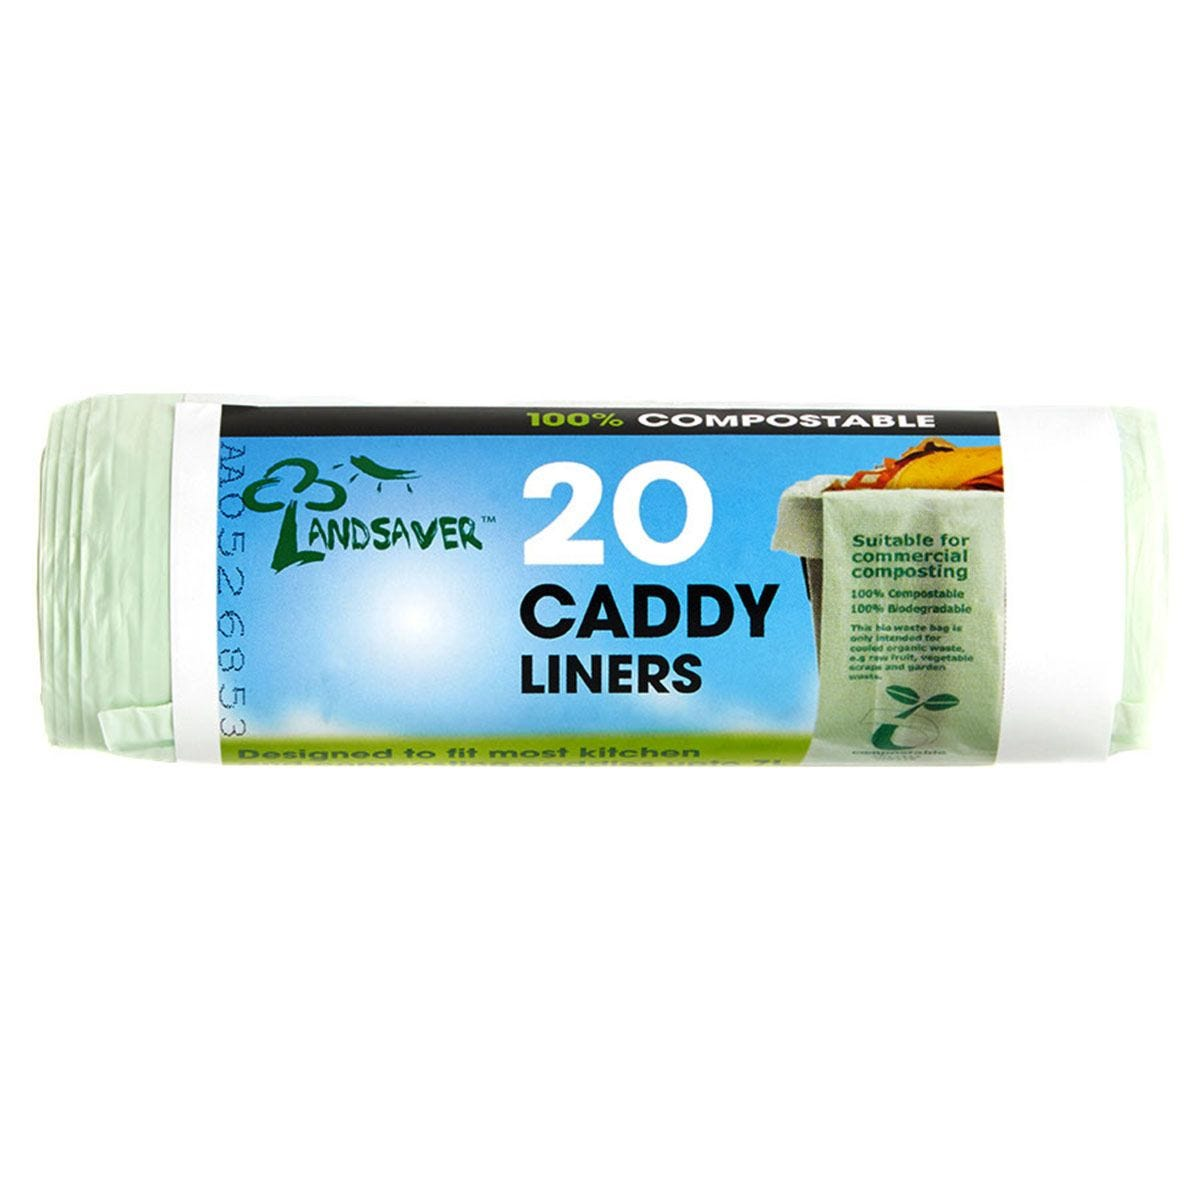 Landsaver Compostable Caddy Liners - Pack of 20